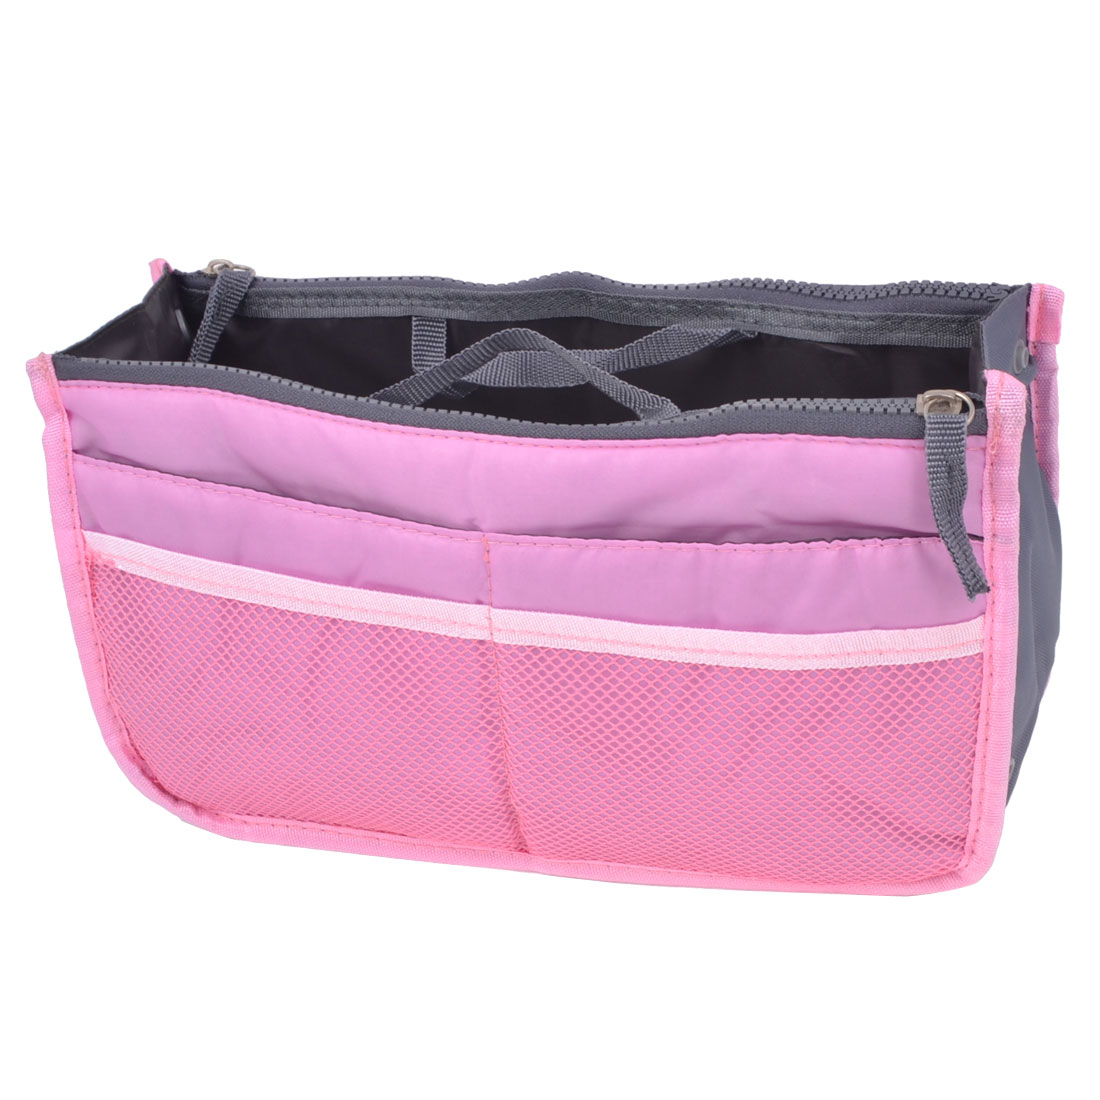 Rectangle Meshy Design Zipper Closure Handbag Storage Bag Holder Rosy